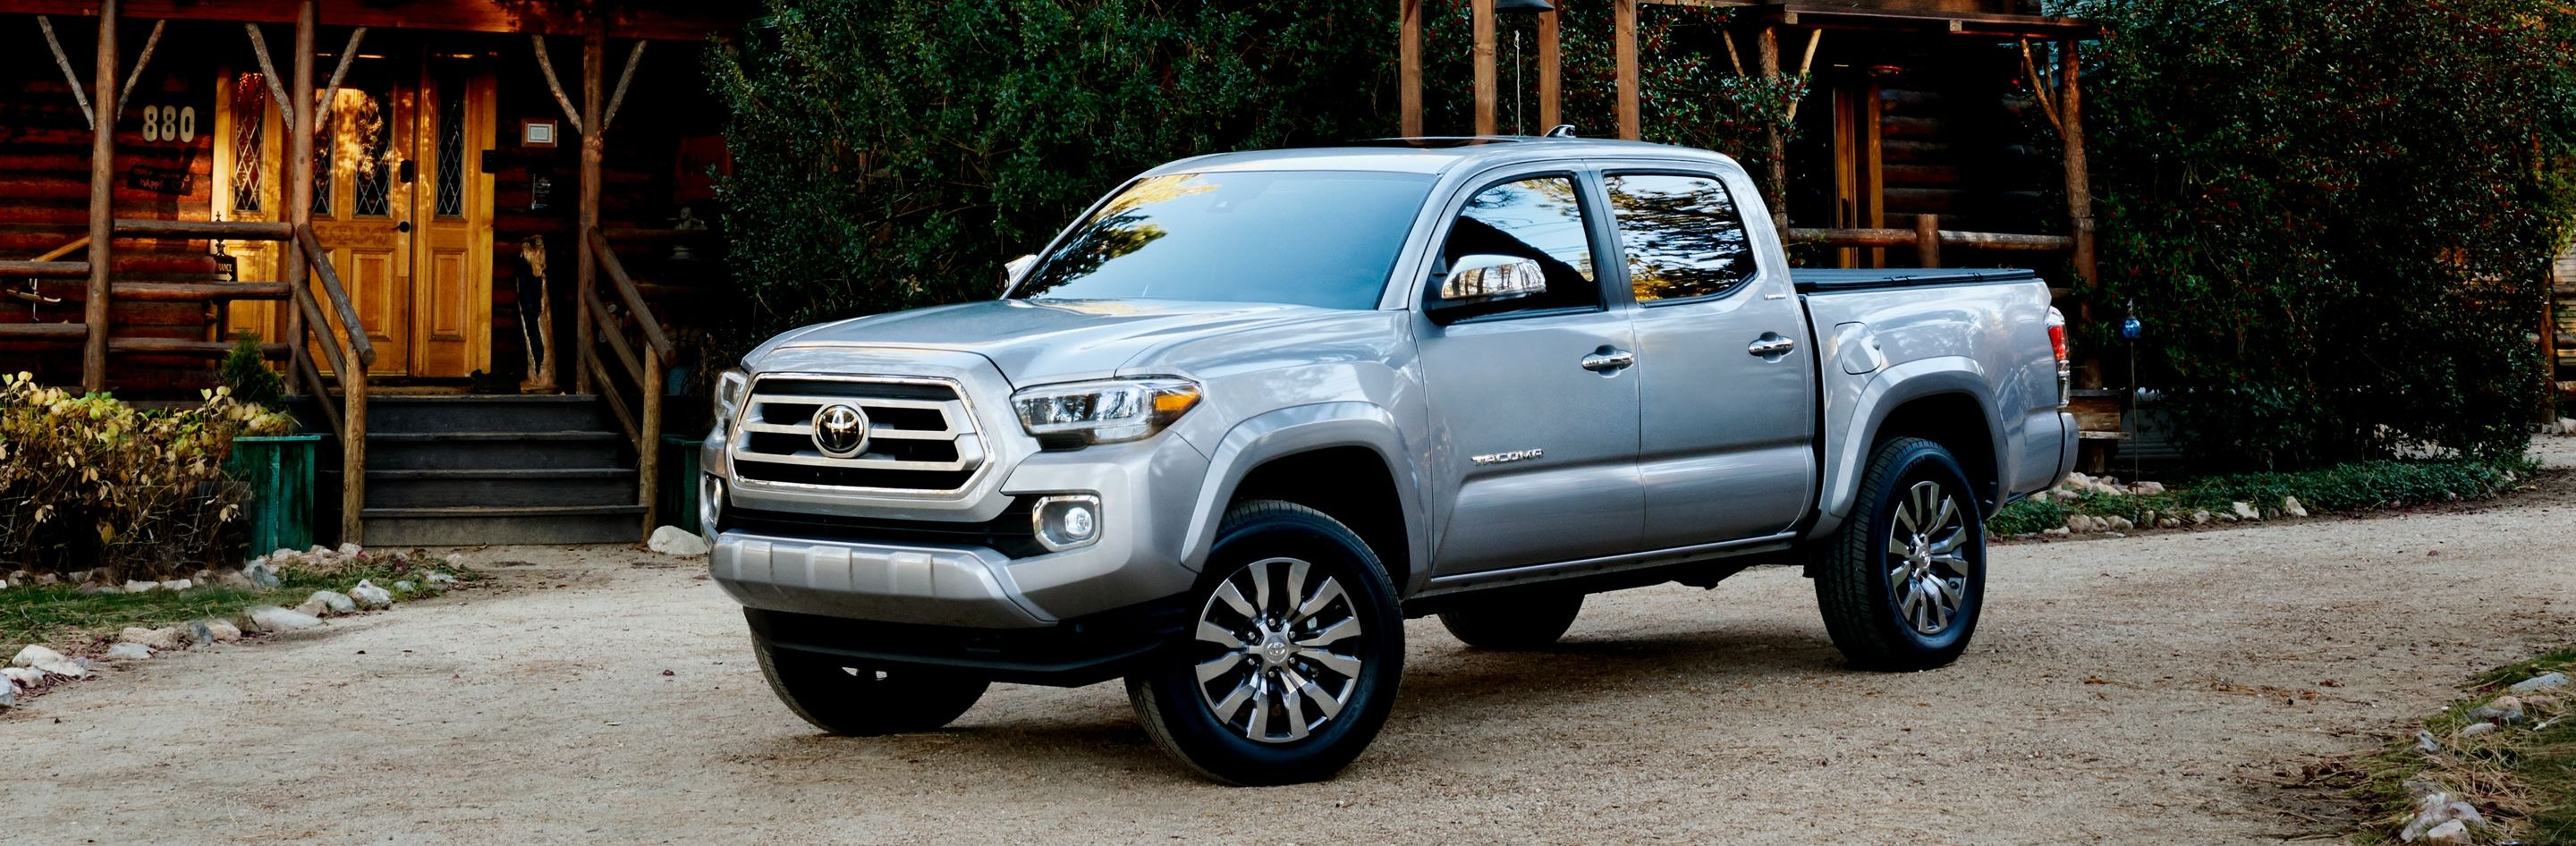 2020 Toyota Tacoma for Sale near Thorndale, PA